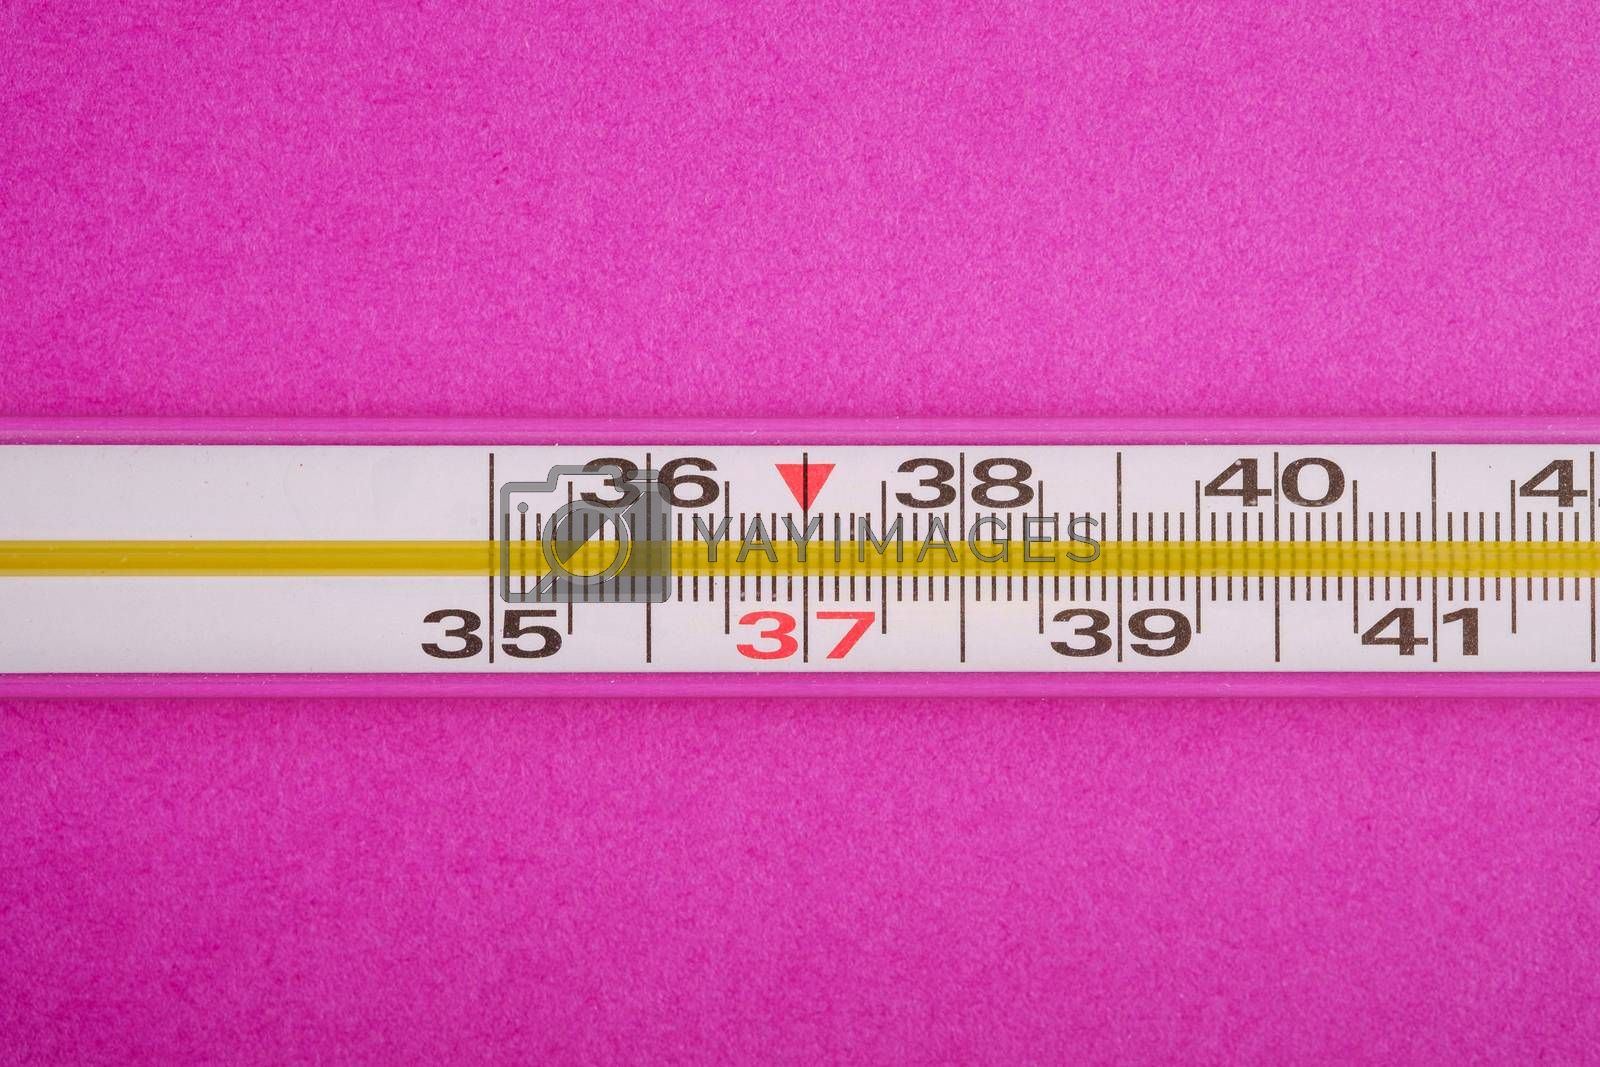 Analog thermometer on pink purple background, healthcare medical concept, antibiotics and cure, top view macro